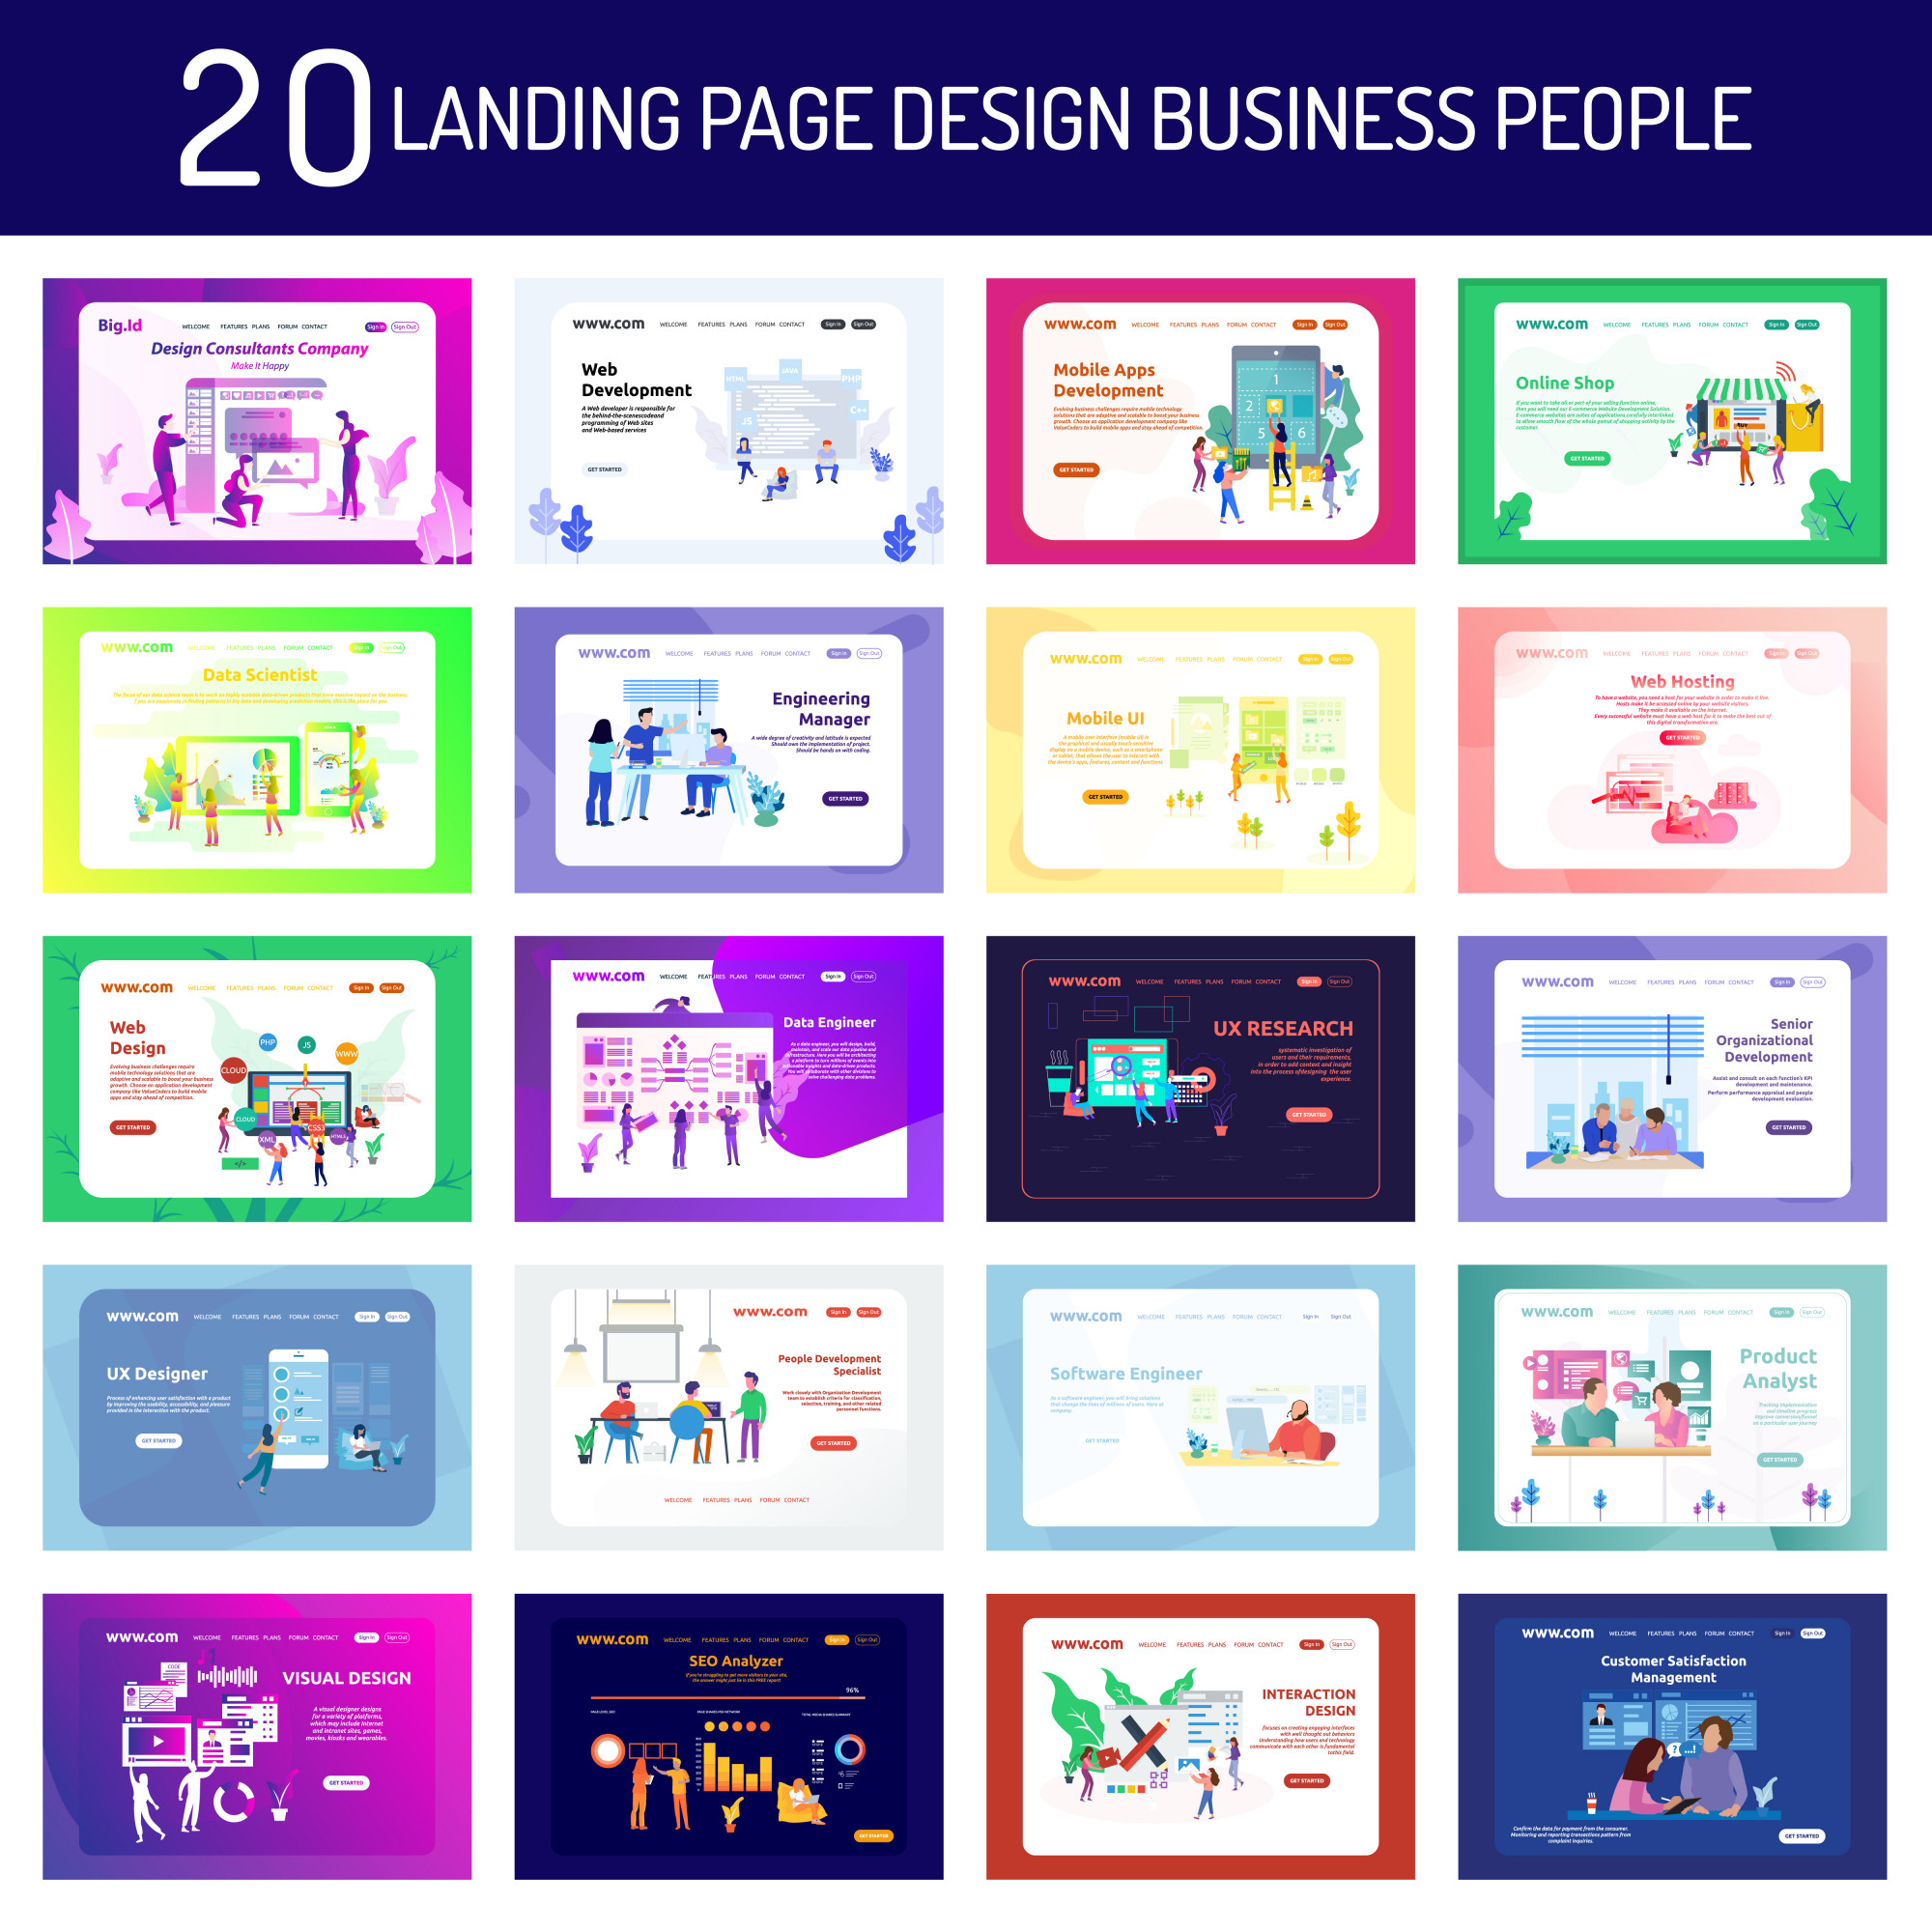 Landing Page Design Business People and Working People